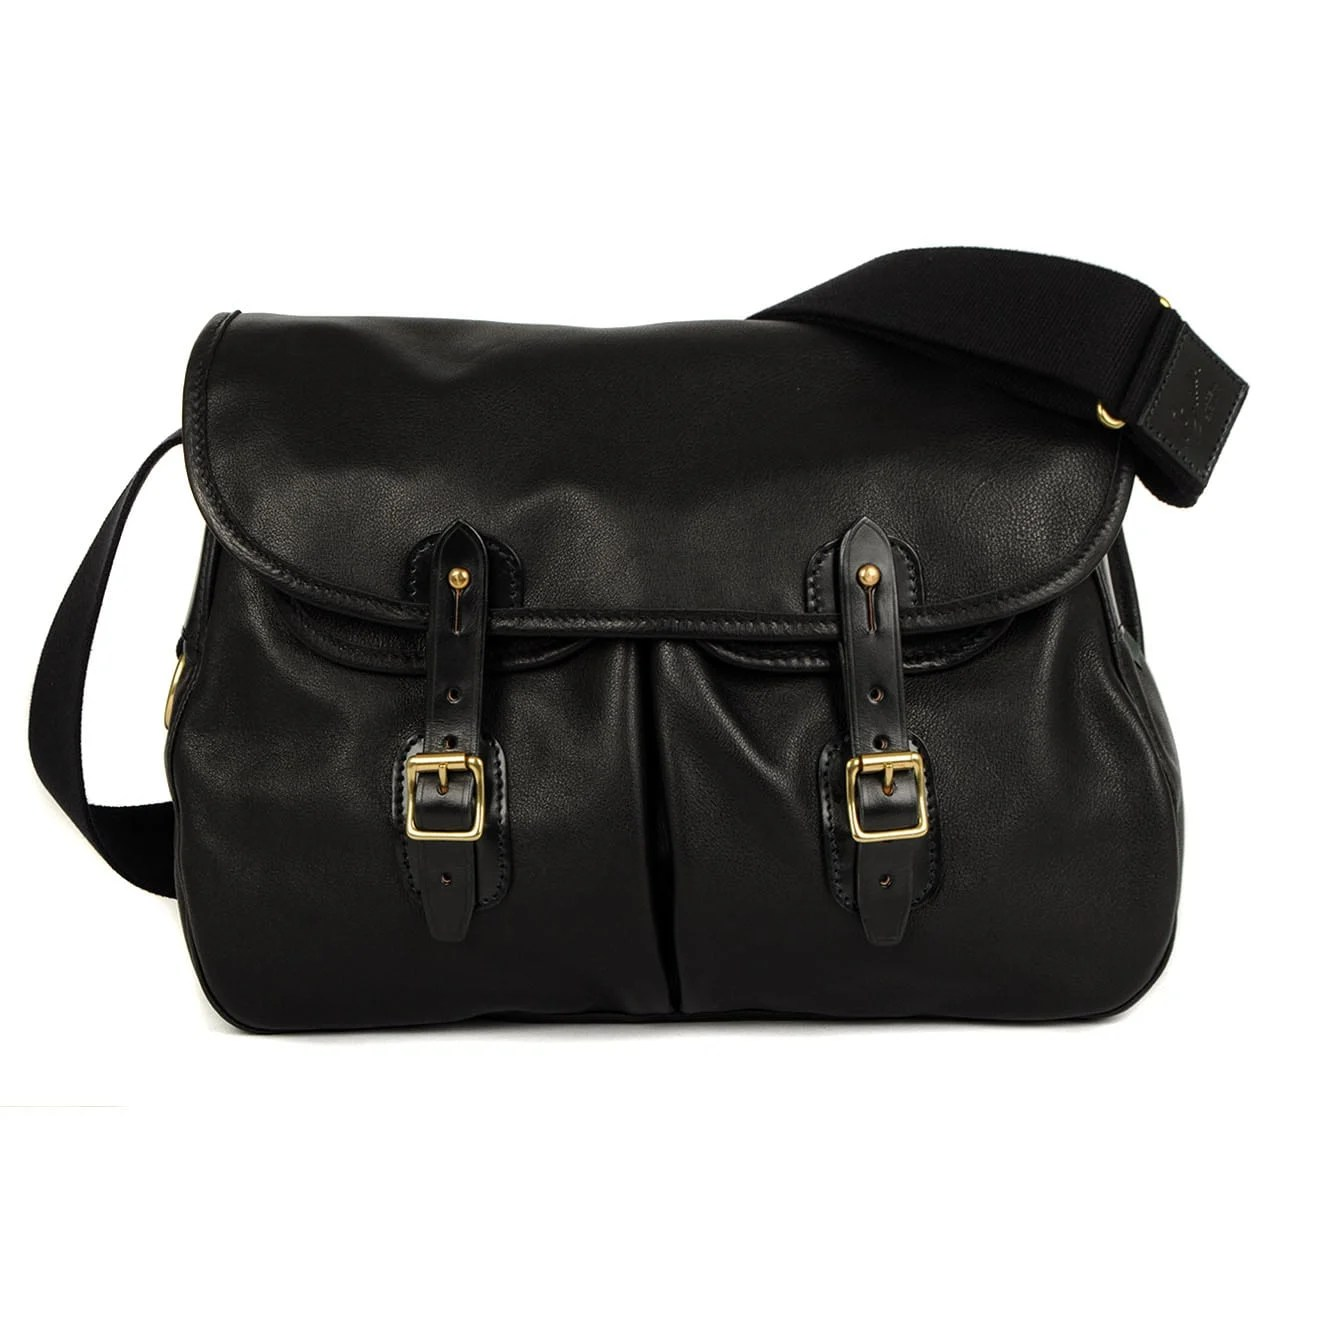 Brady Ariel Trout Bag Black Leather - The Sporting Lodge